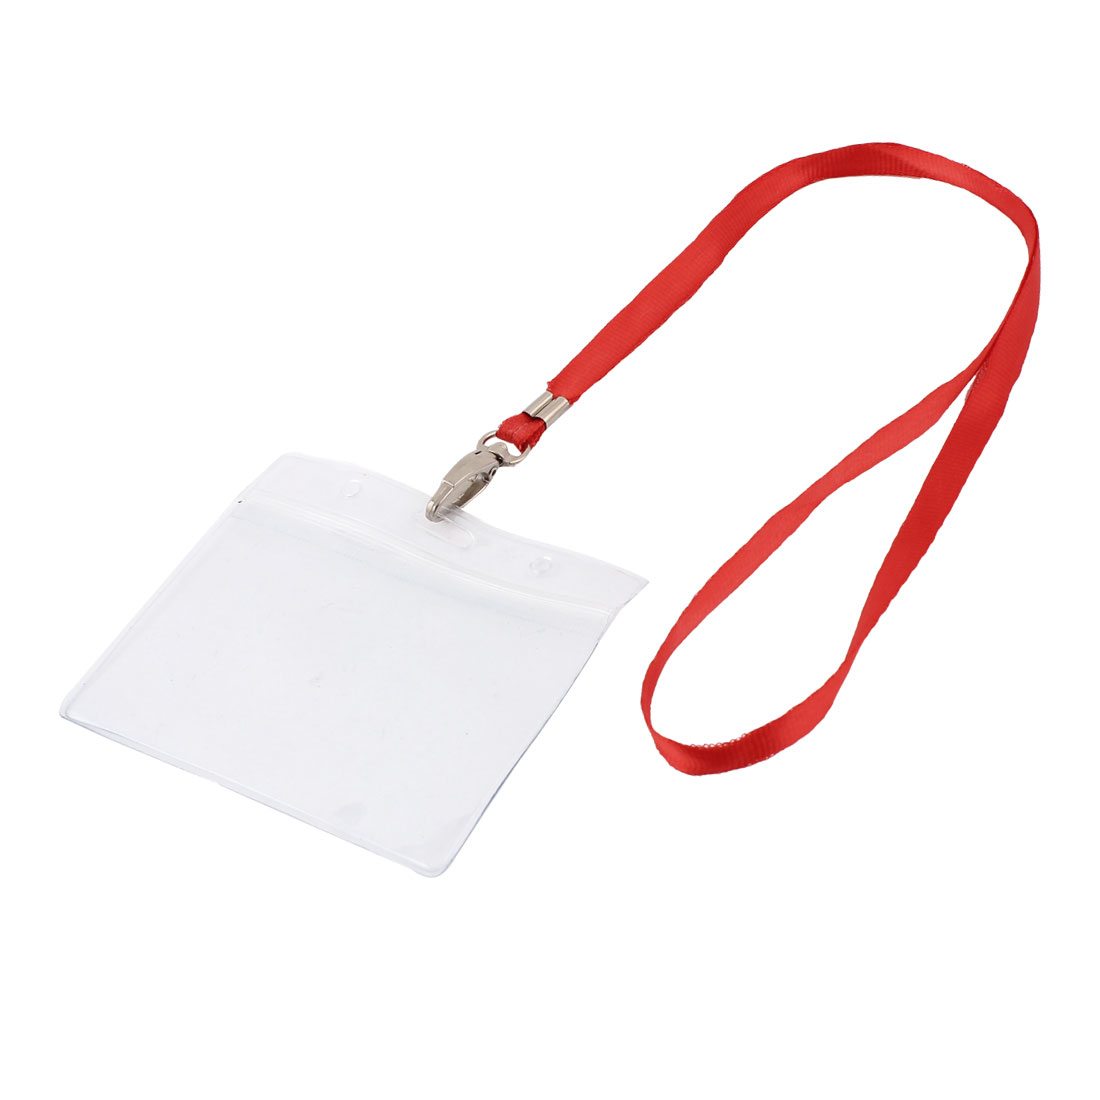 School Exhibition Plastic Horizontal Lanyard ID Work Neck Strap Card Holder Red